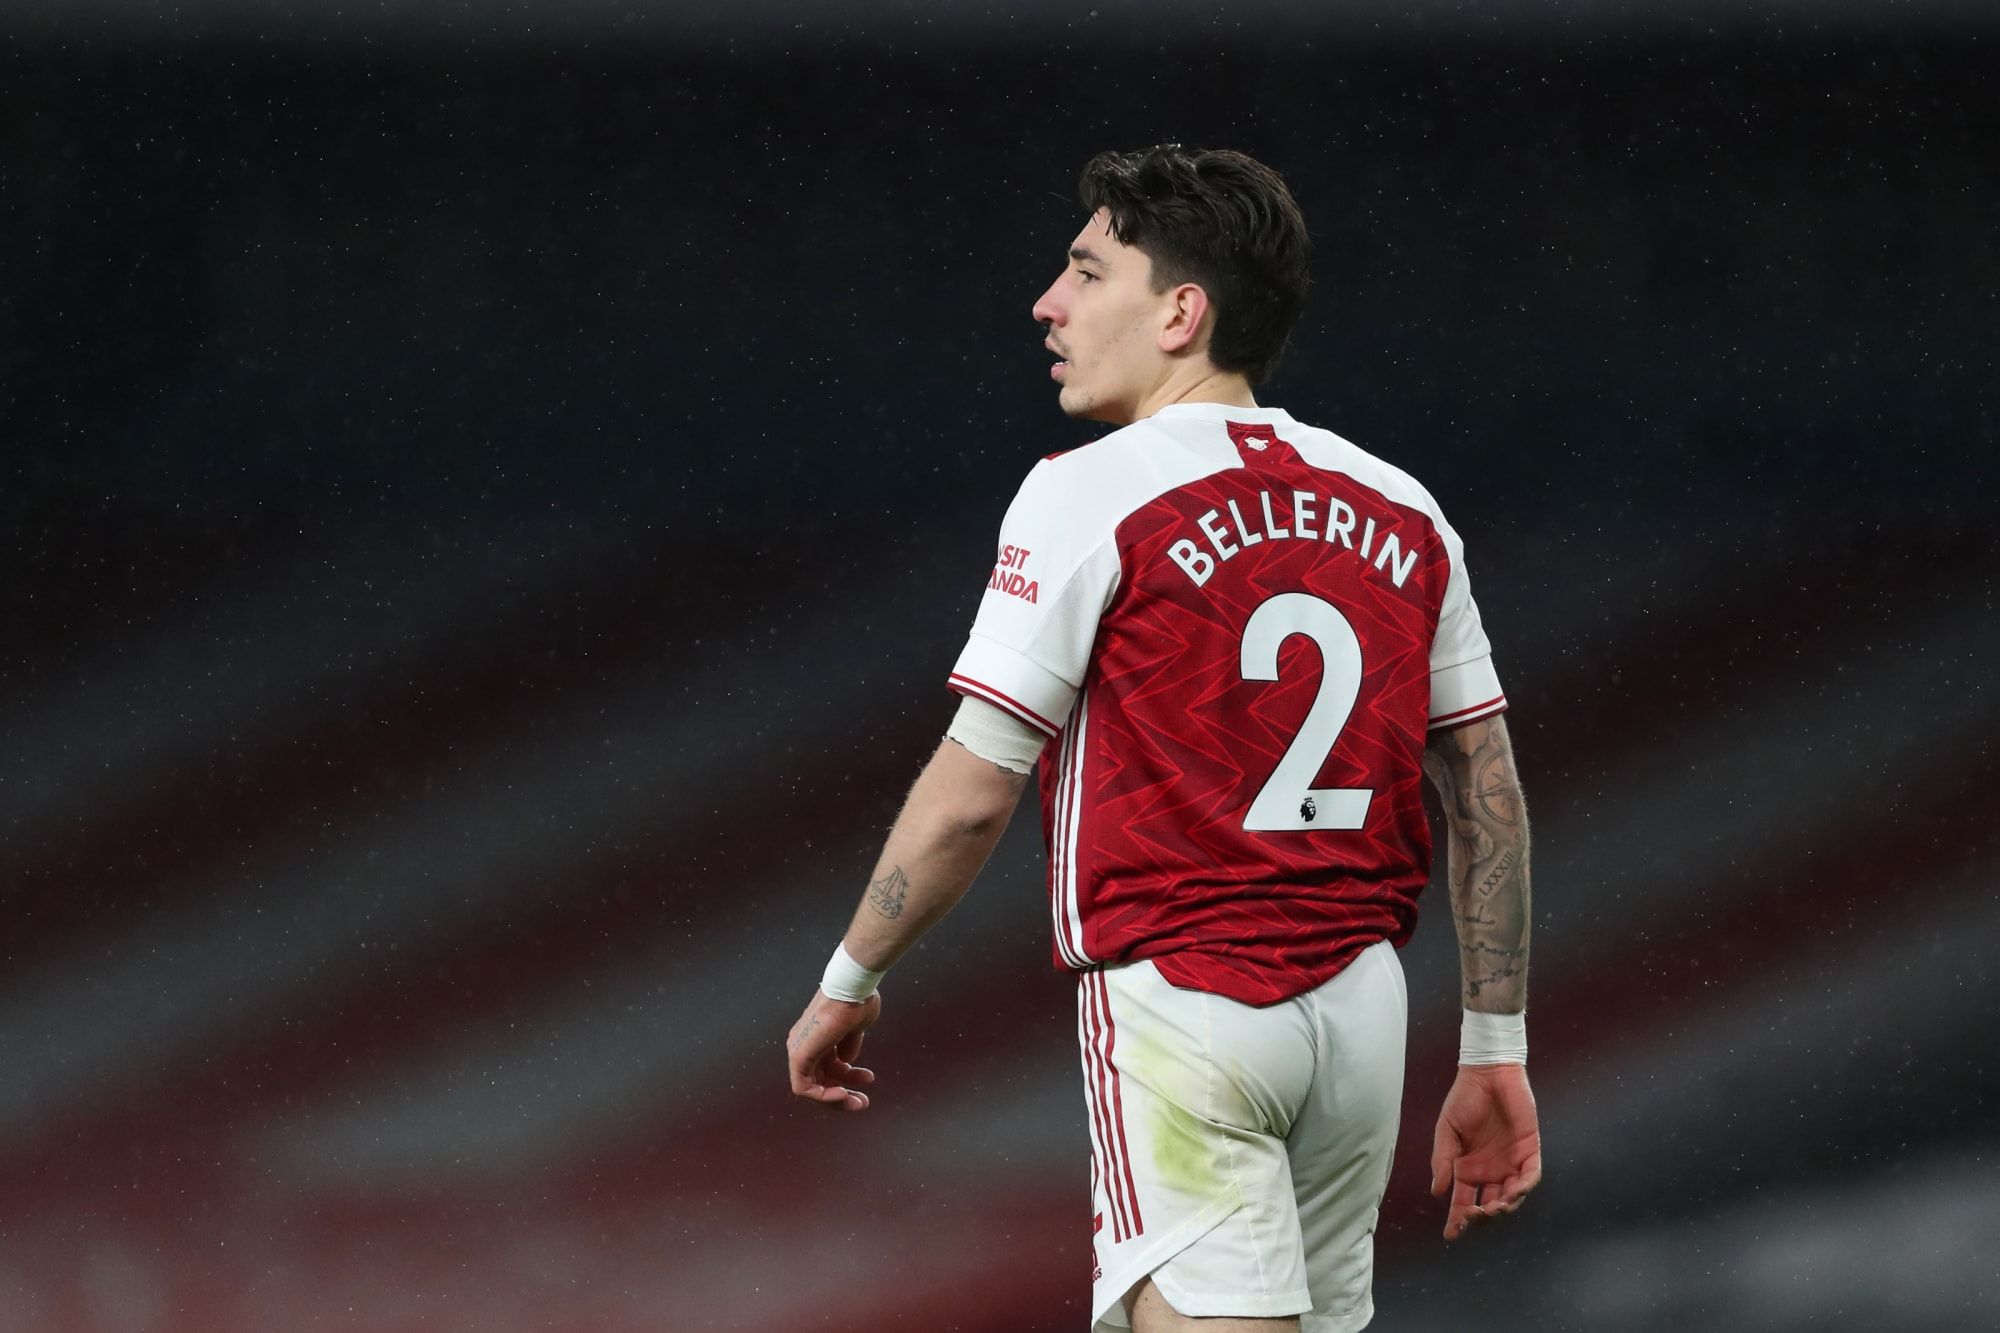 Arsenal: Max Aarons, Tariq Lamptey and 4 potential Hector Bellerin replacements - Pain In The Arsenal